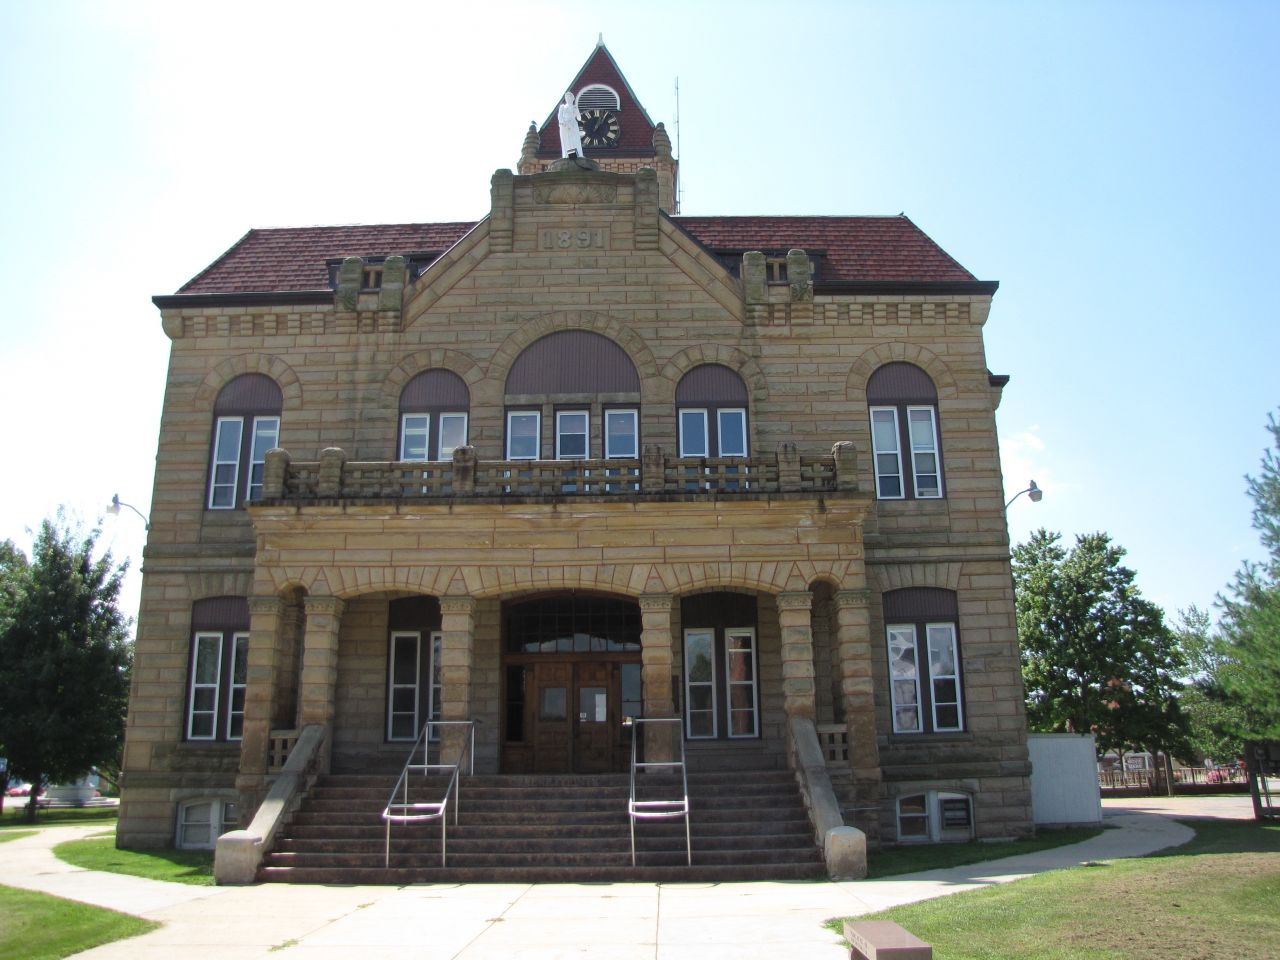 The Greene County Courthouse sits at 519 N. Main, Carrollton.